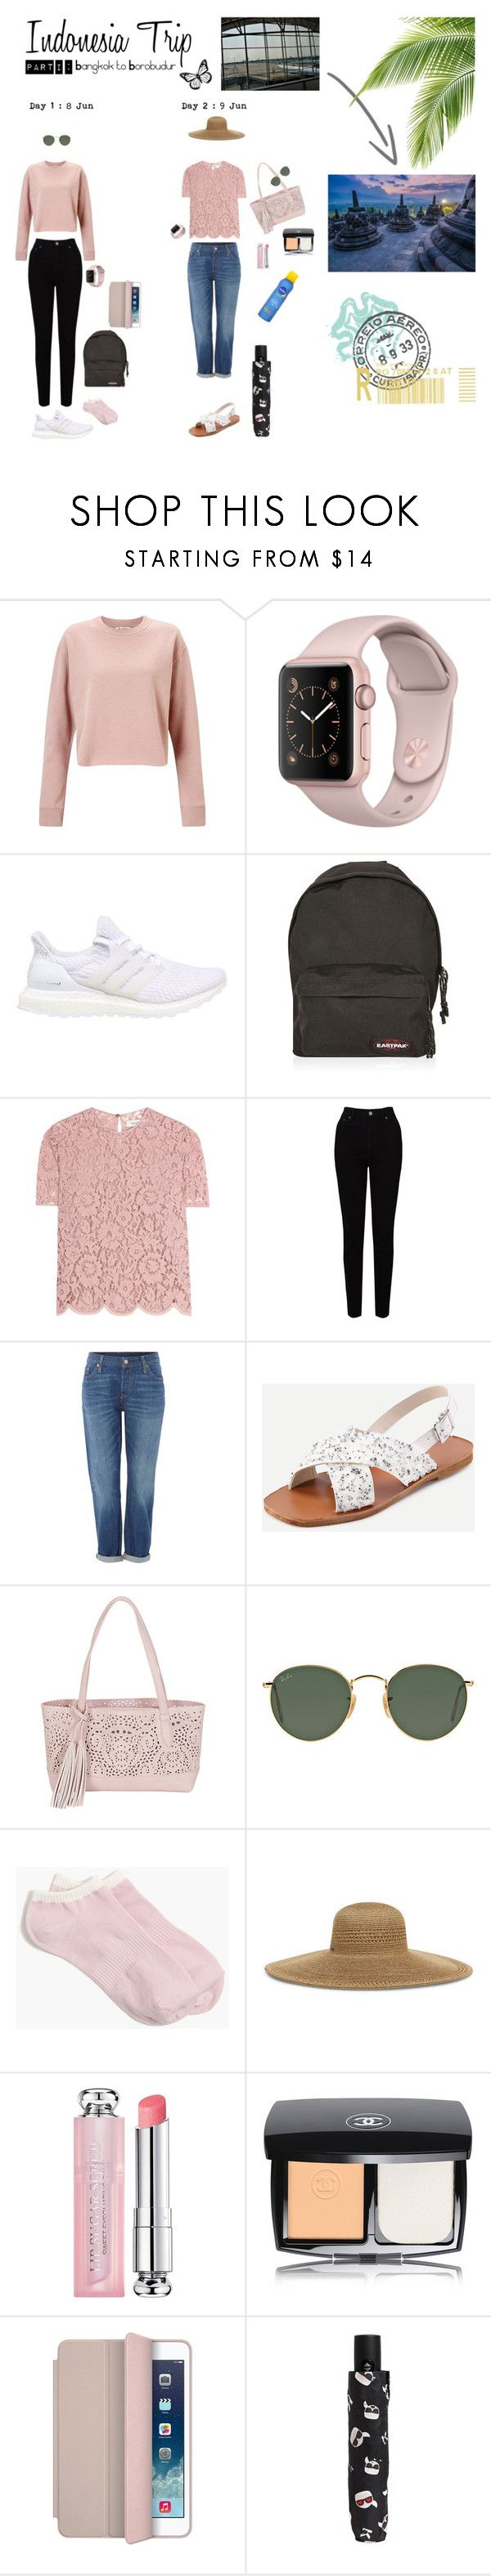 """Indonesia Trip Outfit : Part I (Bangkok to Borobudur)"" by palita-chanmaroeng on Polyvore featuring Miss Selfridge, adidas, Eastpak, Valentino, EAST, Levi's, BUCO, Ray-Ban, J.Crew and Nine West"